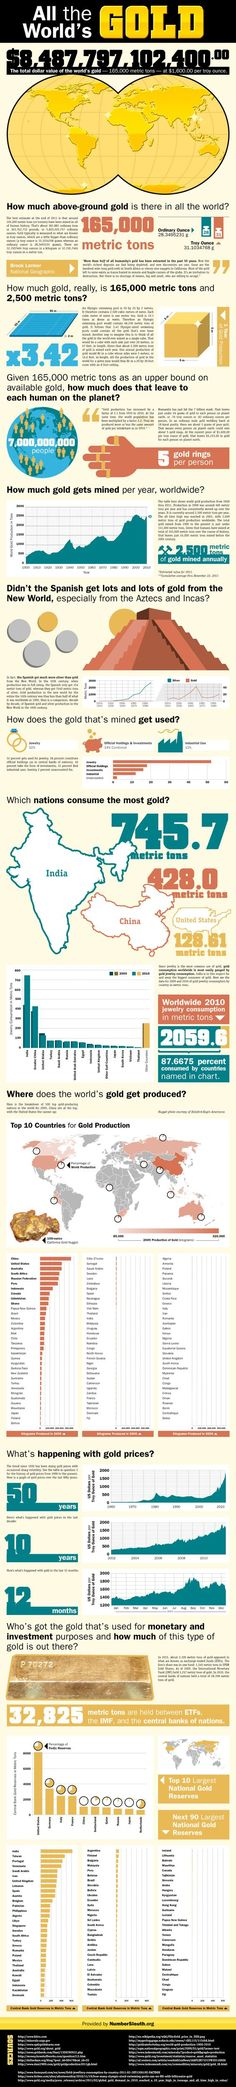 All the World's GOLD.  Starting Investing Today! Join Karatbars International for FREE visit my link http://www.karatbars.com/?s=michellebrandon Protect yourself with gold Karatbars, 24-karat currency-grade gold bullion, save a gram at a time, affordable and convenient.Gold is the asset that has proven the test of time against inflation & bankruptcy & is accepted all over the world. Karatbars has an Affiliate Program that offers free gold & monetary compensation and make great gifts.